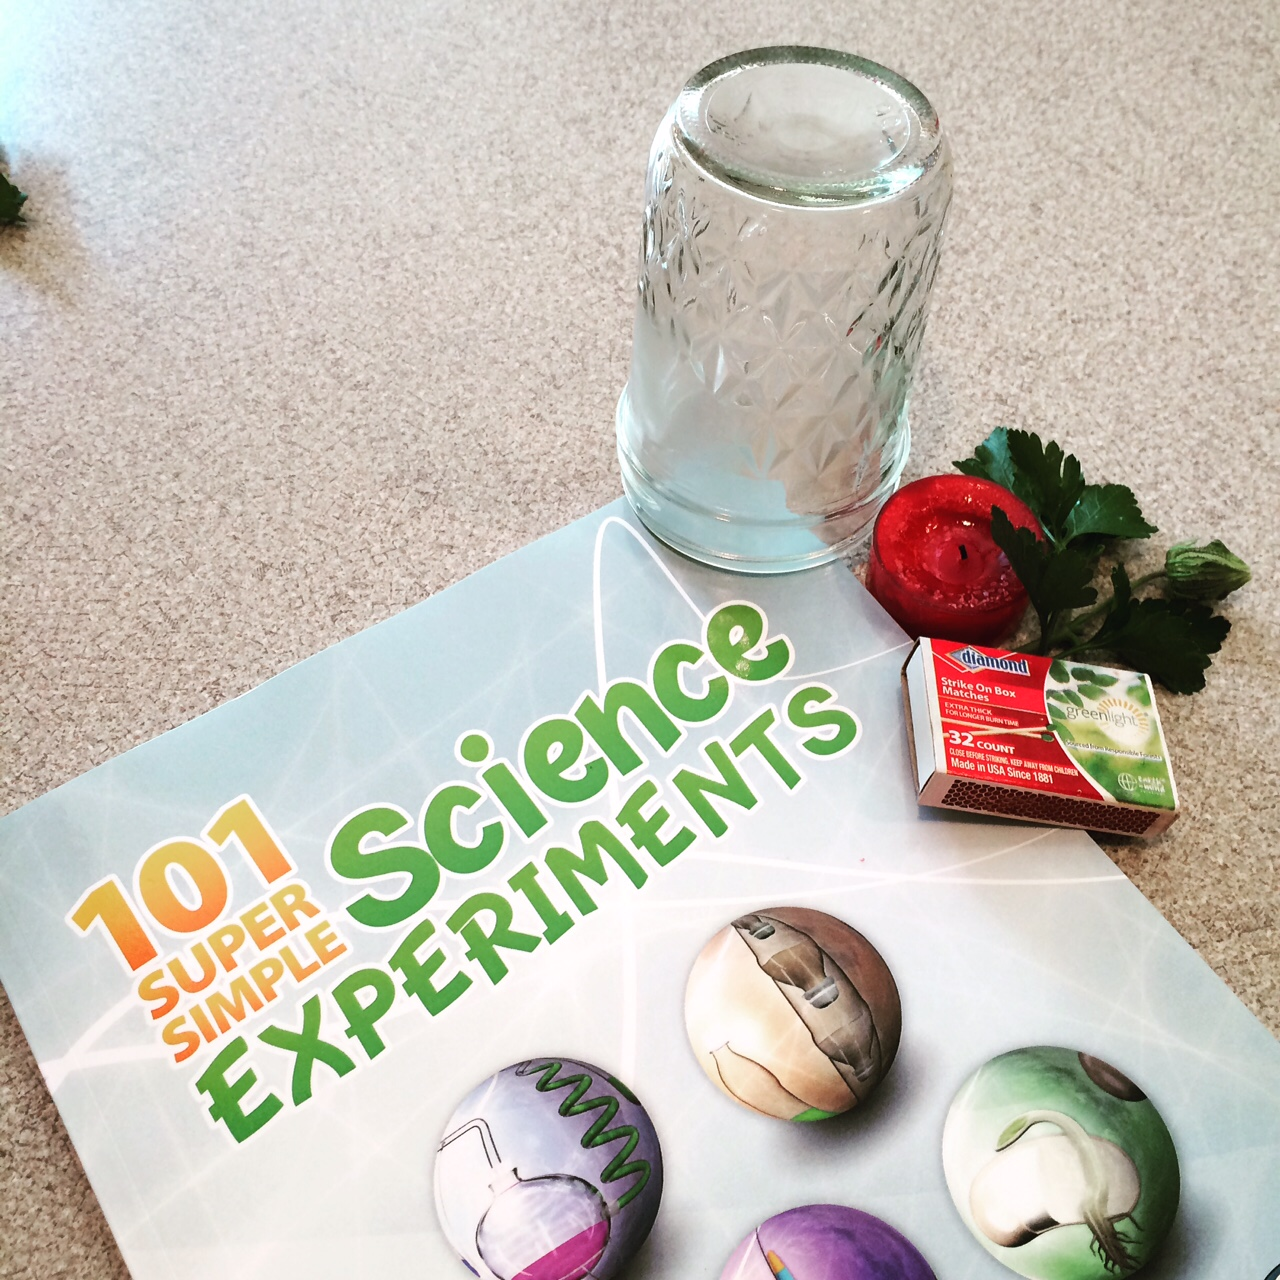 Real Science 4 Kids is Real Science!